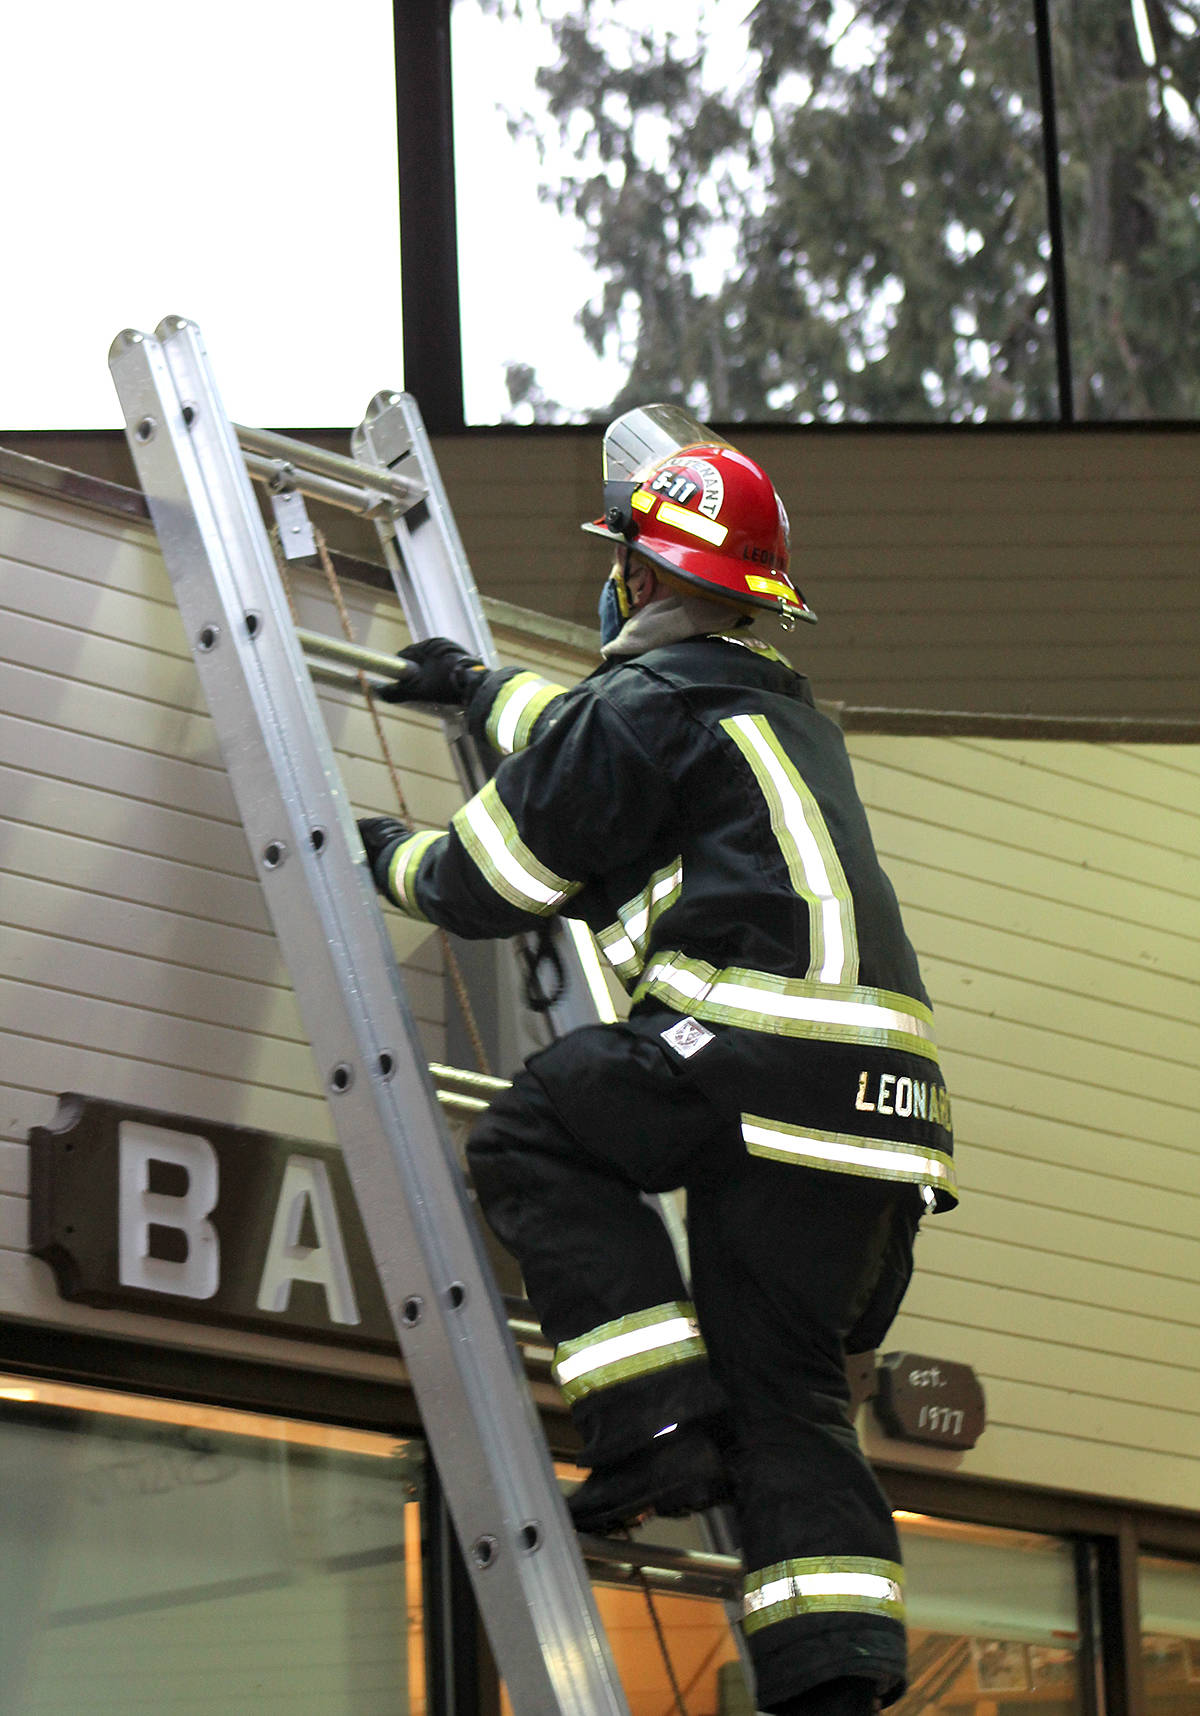 Township firefighters helped evacuate a Brookswood mall Friday afternoon after reports of the smell of fire. (Anngela Bayer/Special to Langley Advance Times)